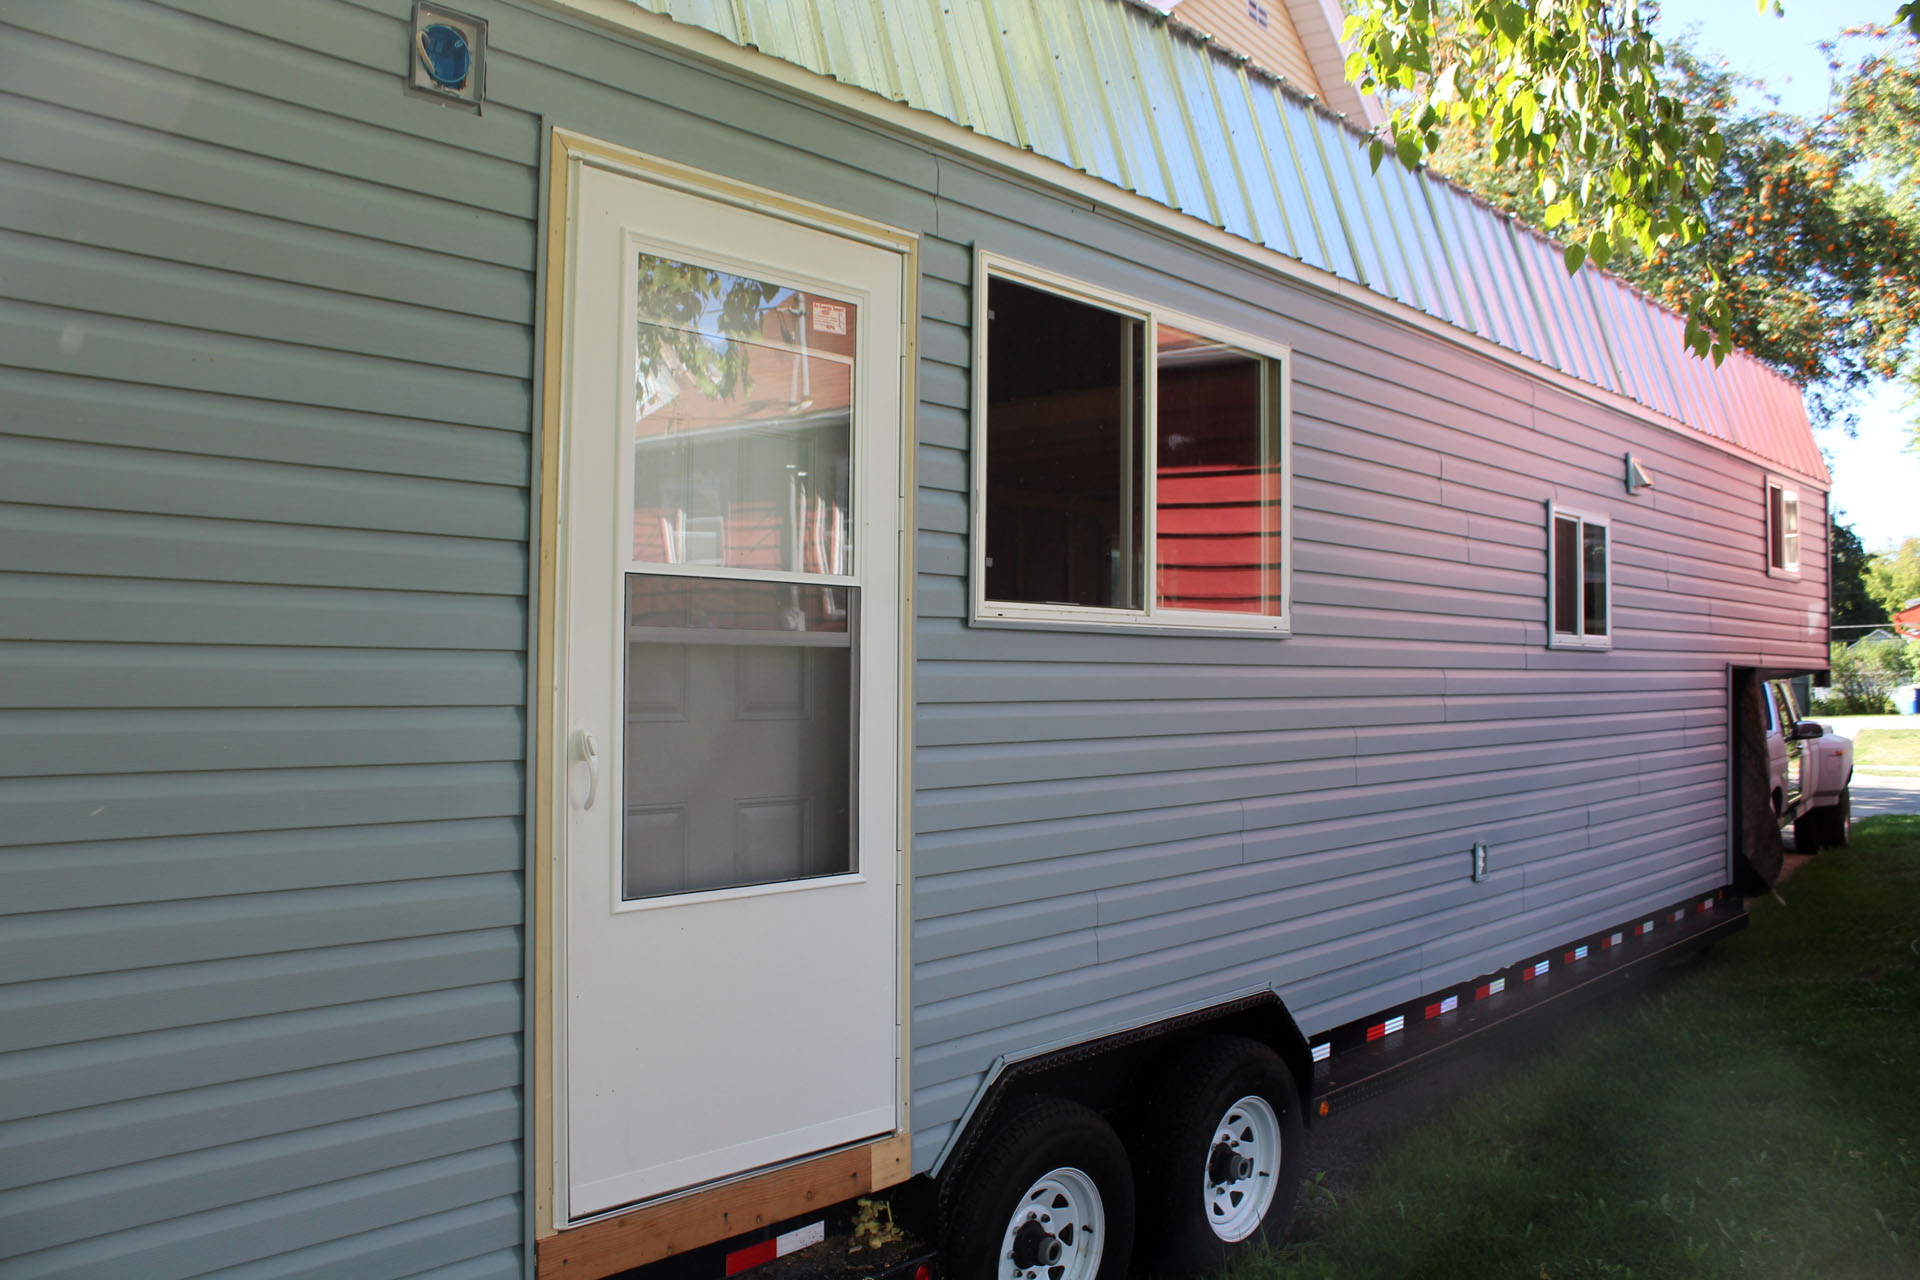 Tiny houses on trailers for sale - Tiny House Finished Exterior